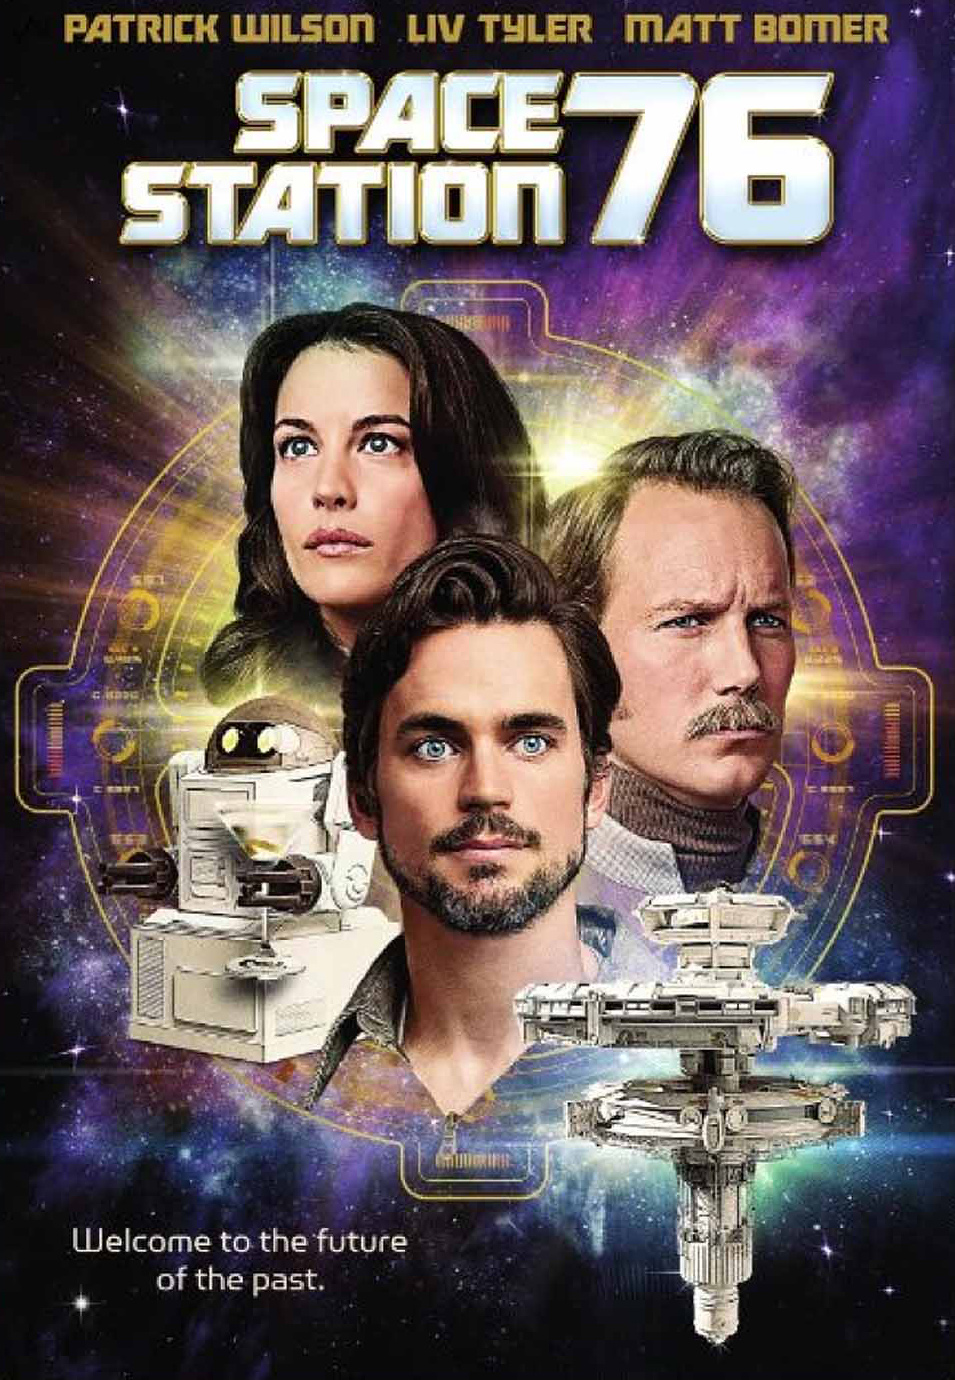 Space Station 76 [2014 USA Movie] Comedy, Drama, Sci Fi